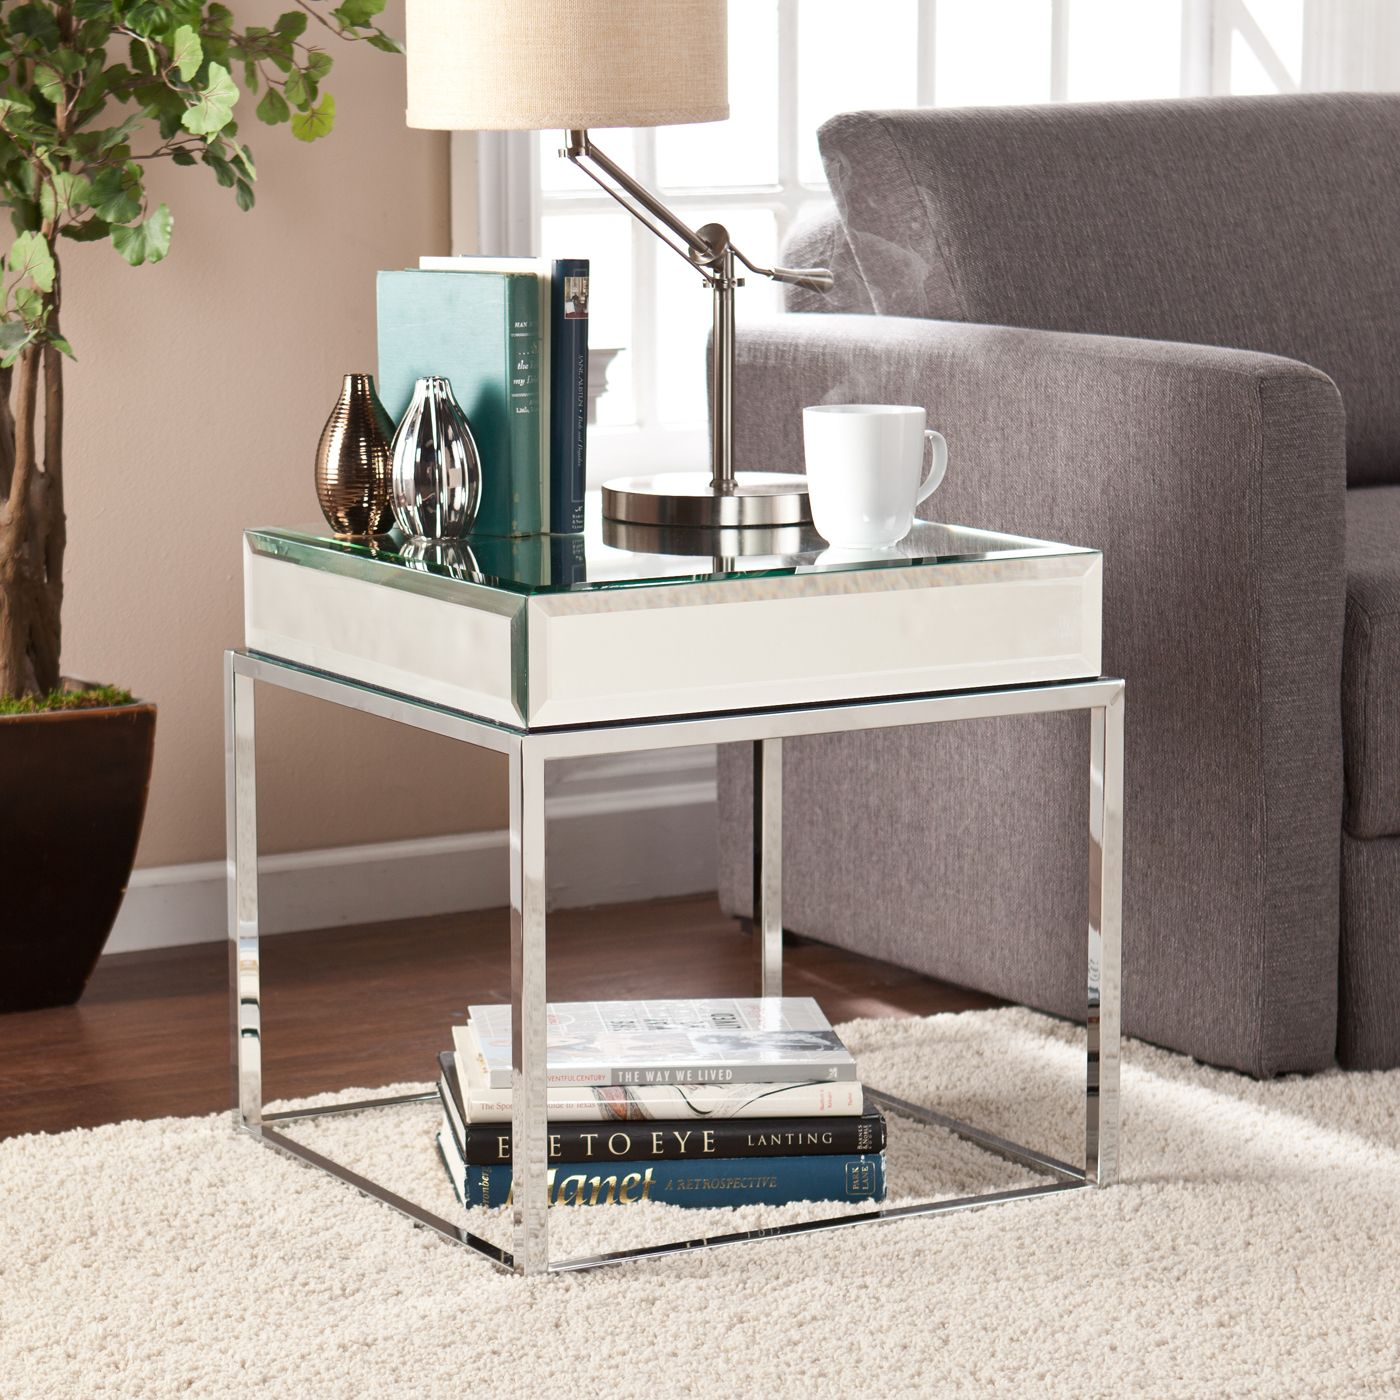 Shop Boston Loft Furnishings ATG2729 Corina Mirrored End Table at